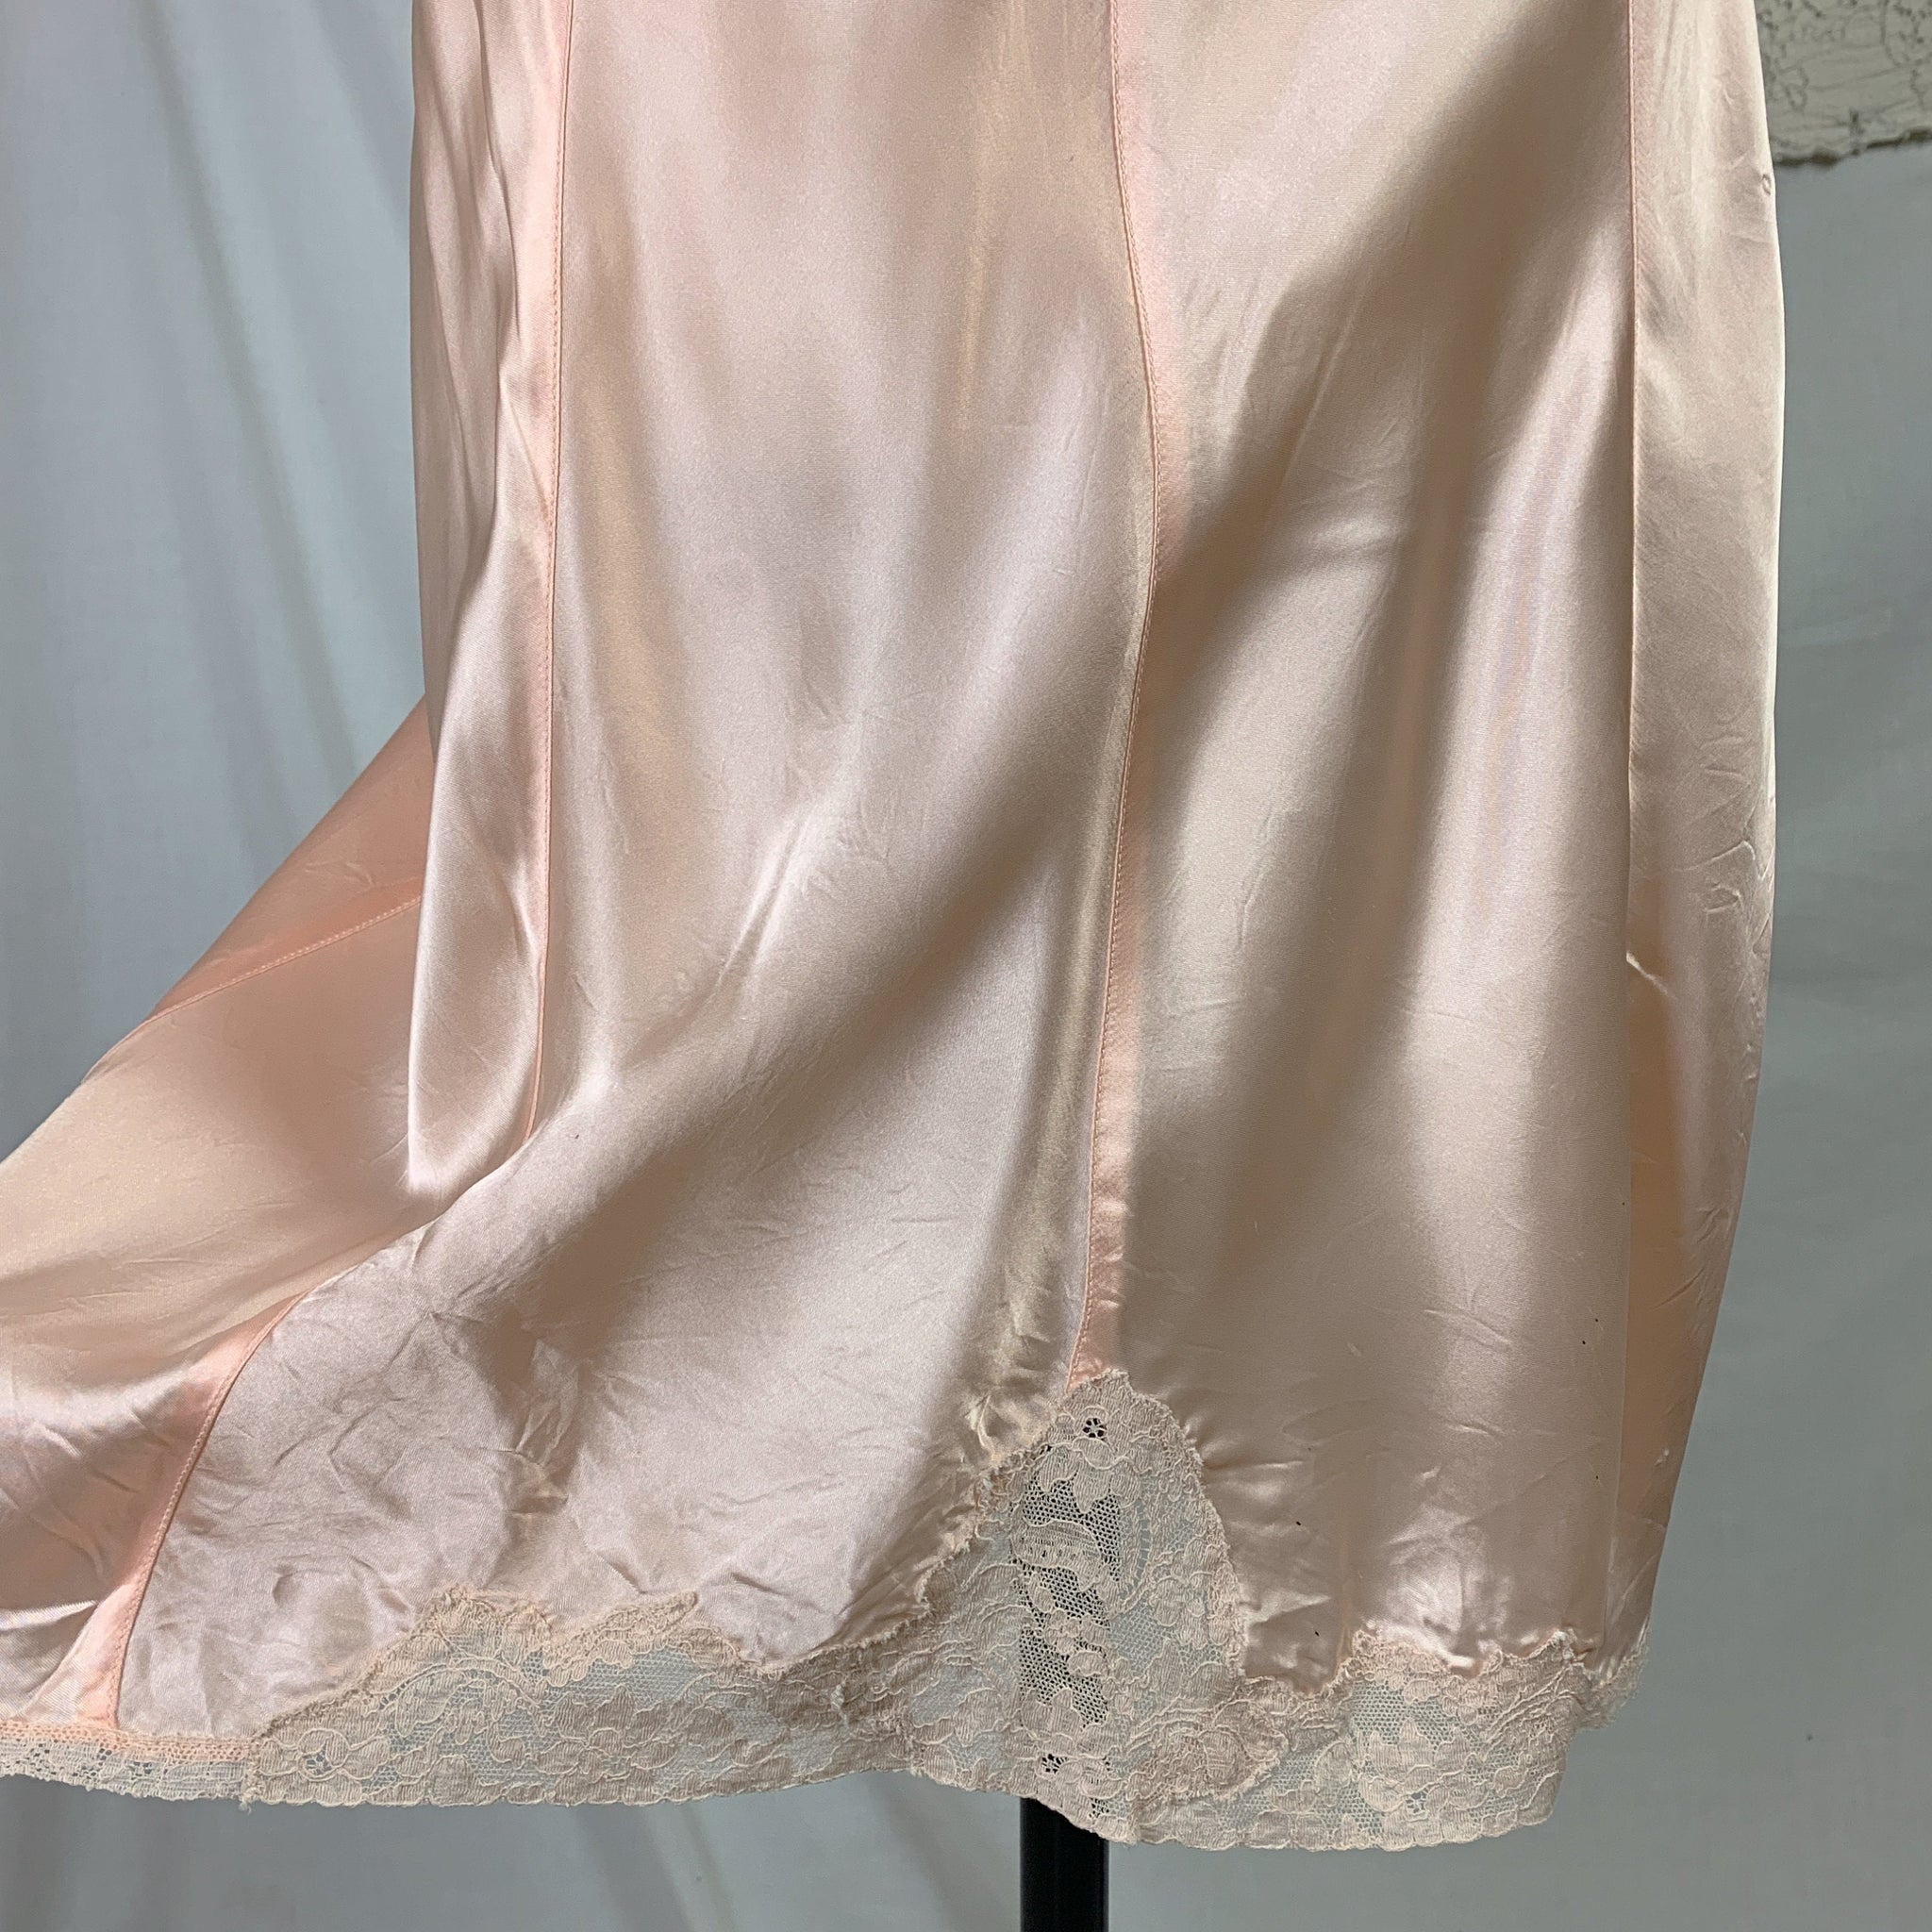 Vintage 1940's Slip | Pale Powder Pink Rayon Satin with Lace & 8 Gores | Lady Love | Size SM, MED